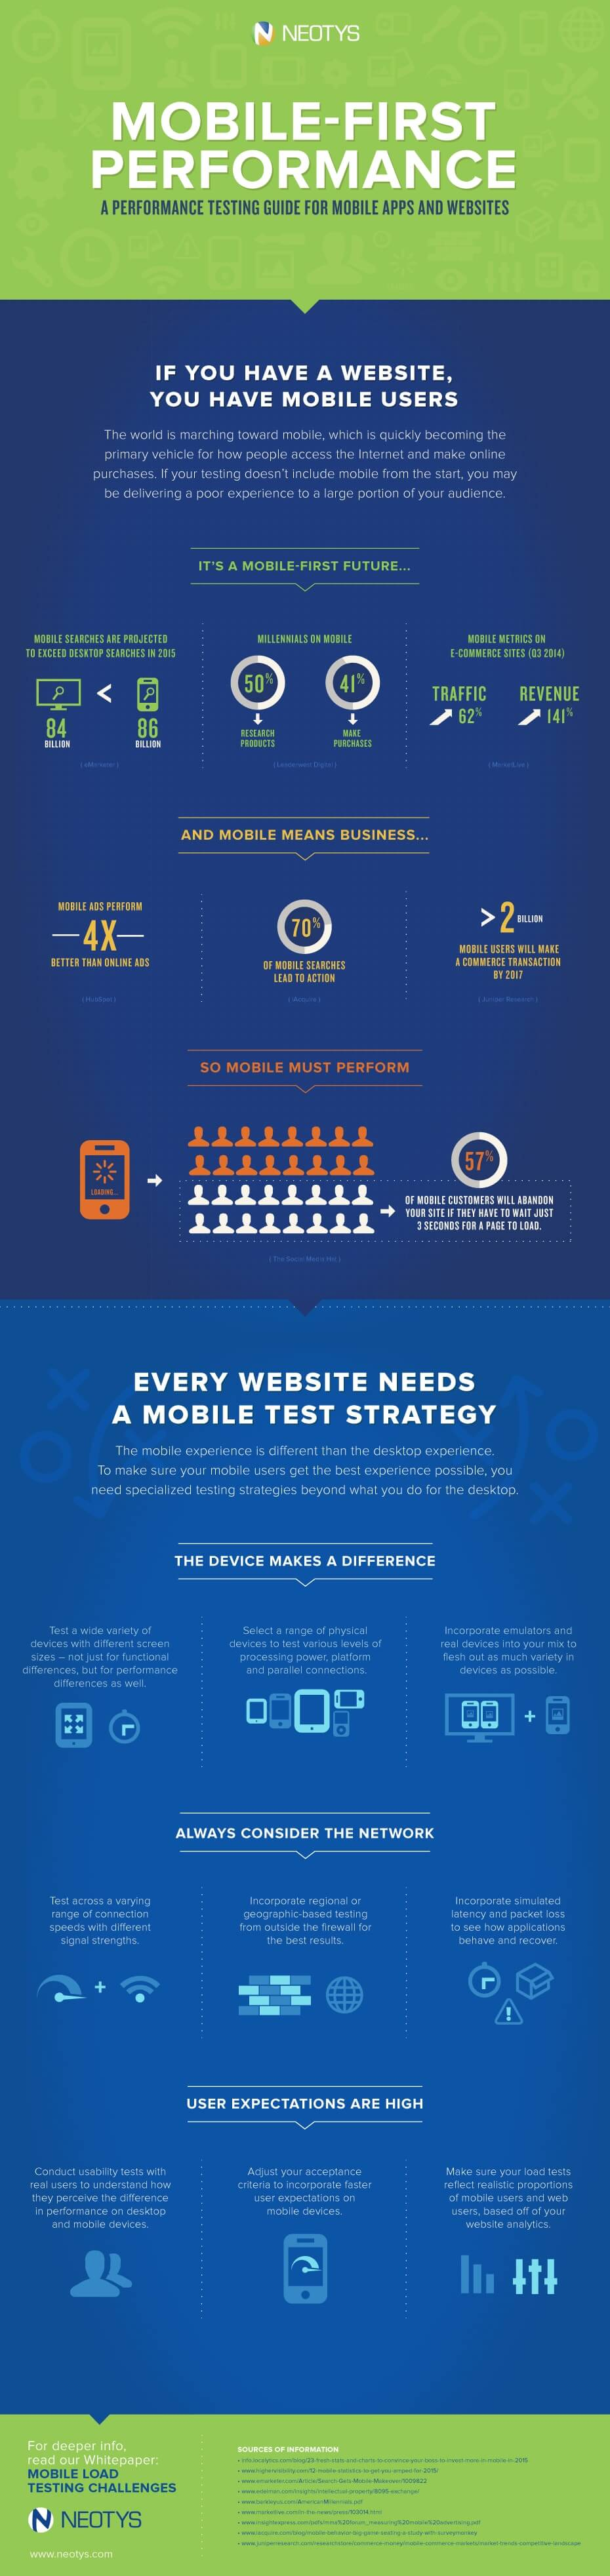 Mobile first performance